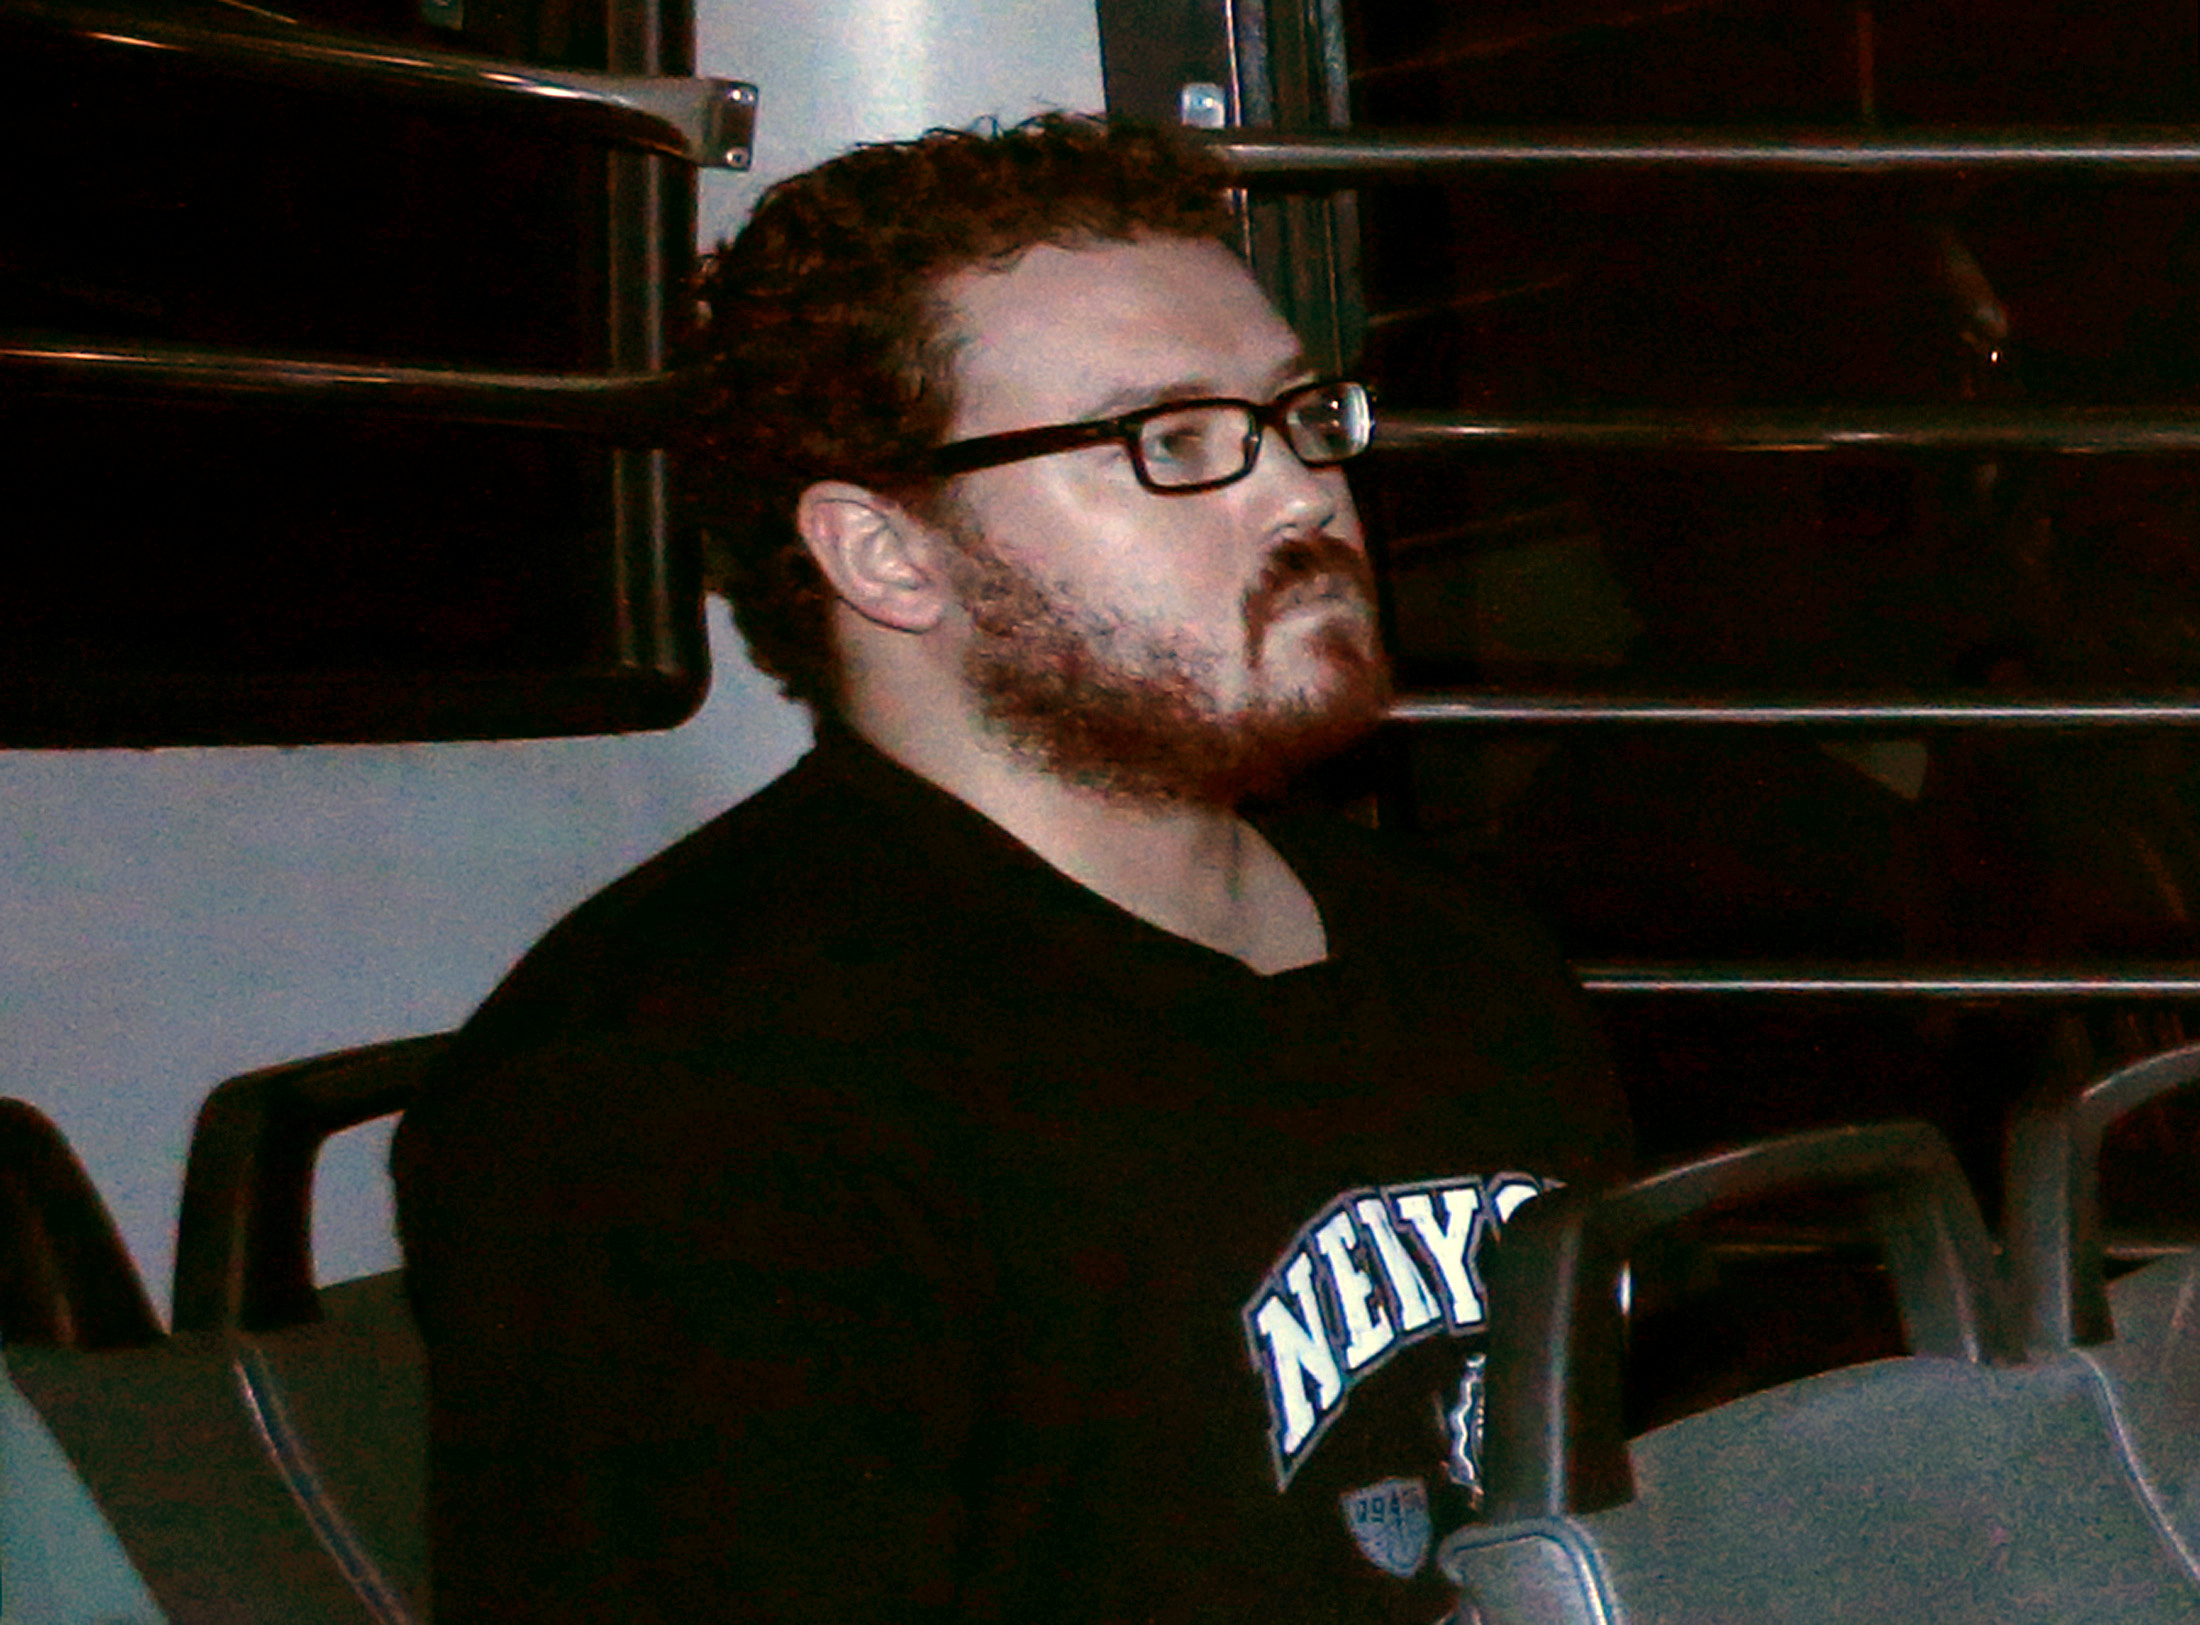 Rurik George Caton Jutting, a British banker charged with two counts of murder after police found the bodies of two women in his apartment, sitting in the back row of a prison bus as he arrives at the Eastern Law Courts in Hong Kong on Nov. 24, 2014